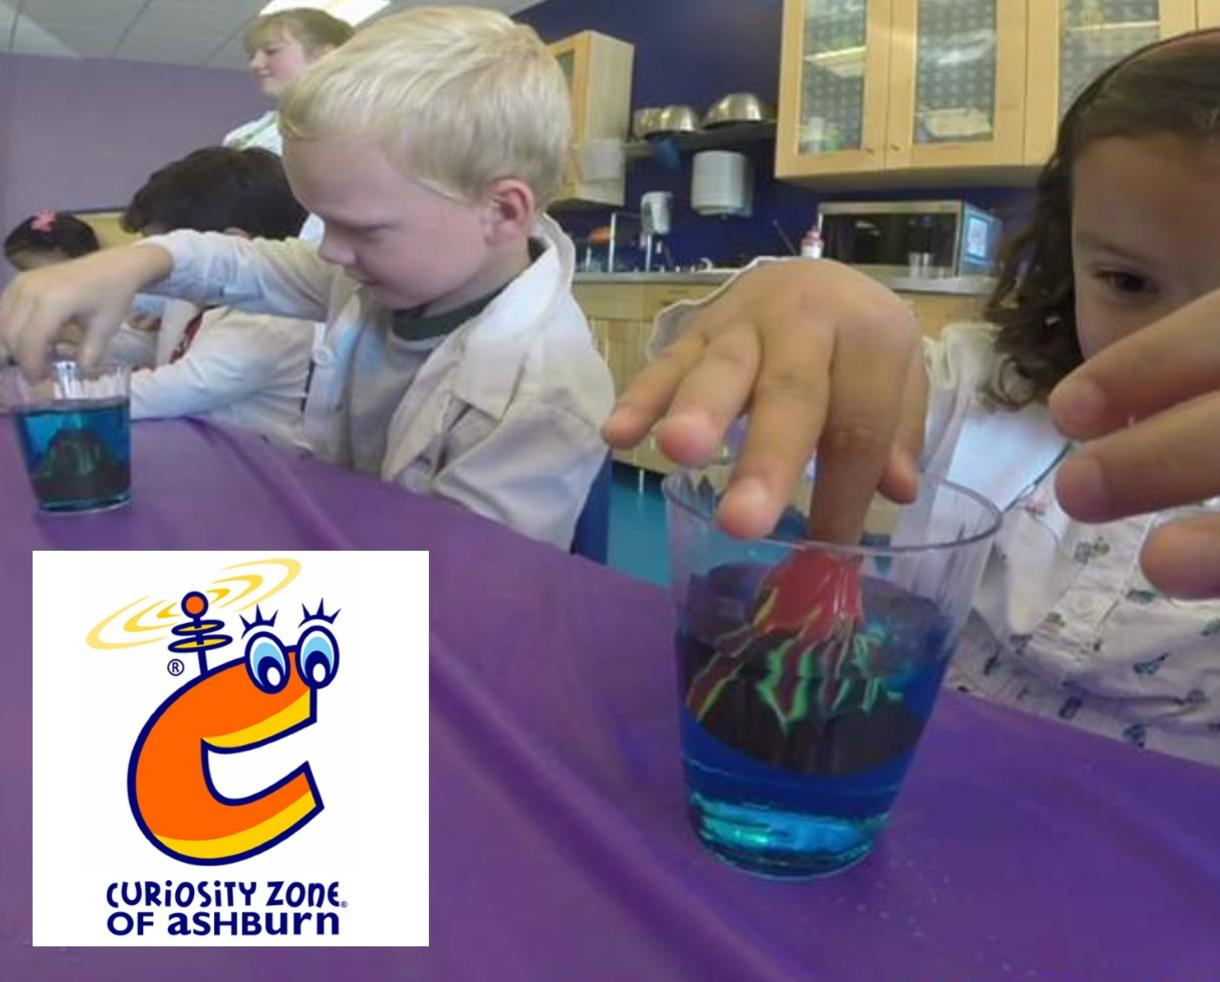 $179 for Curiosity Zone Science, Minecraft or Electronics Classes for Ages 3-11 - Ashburn (30% Off)